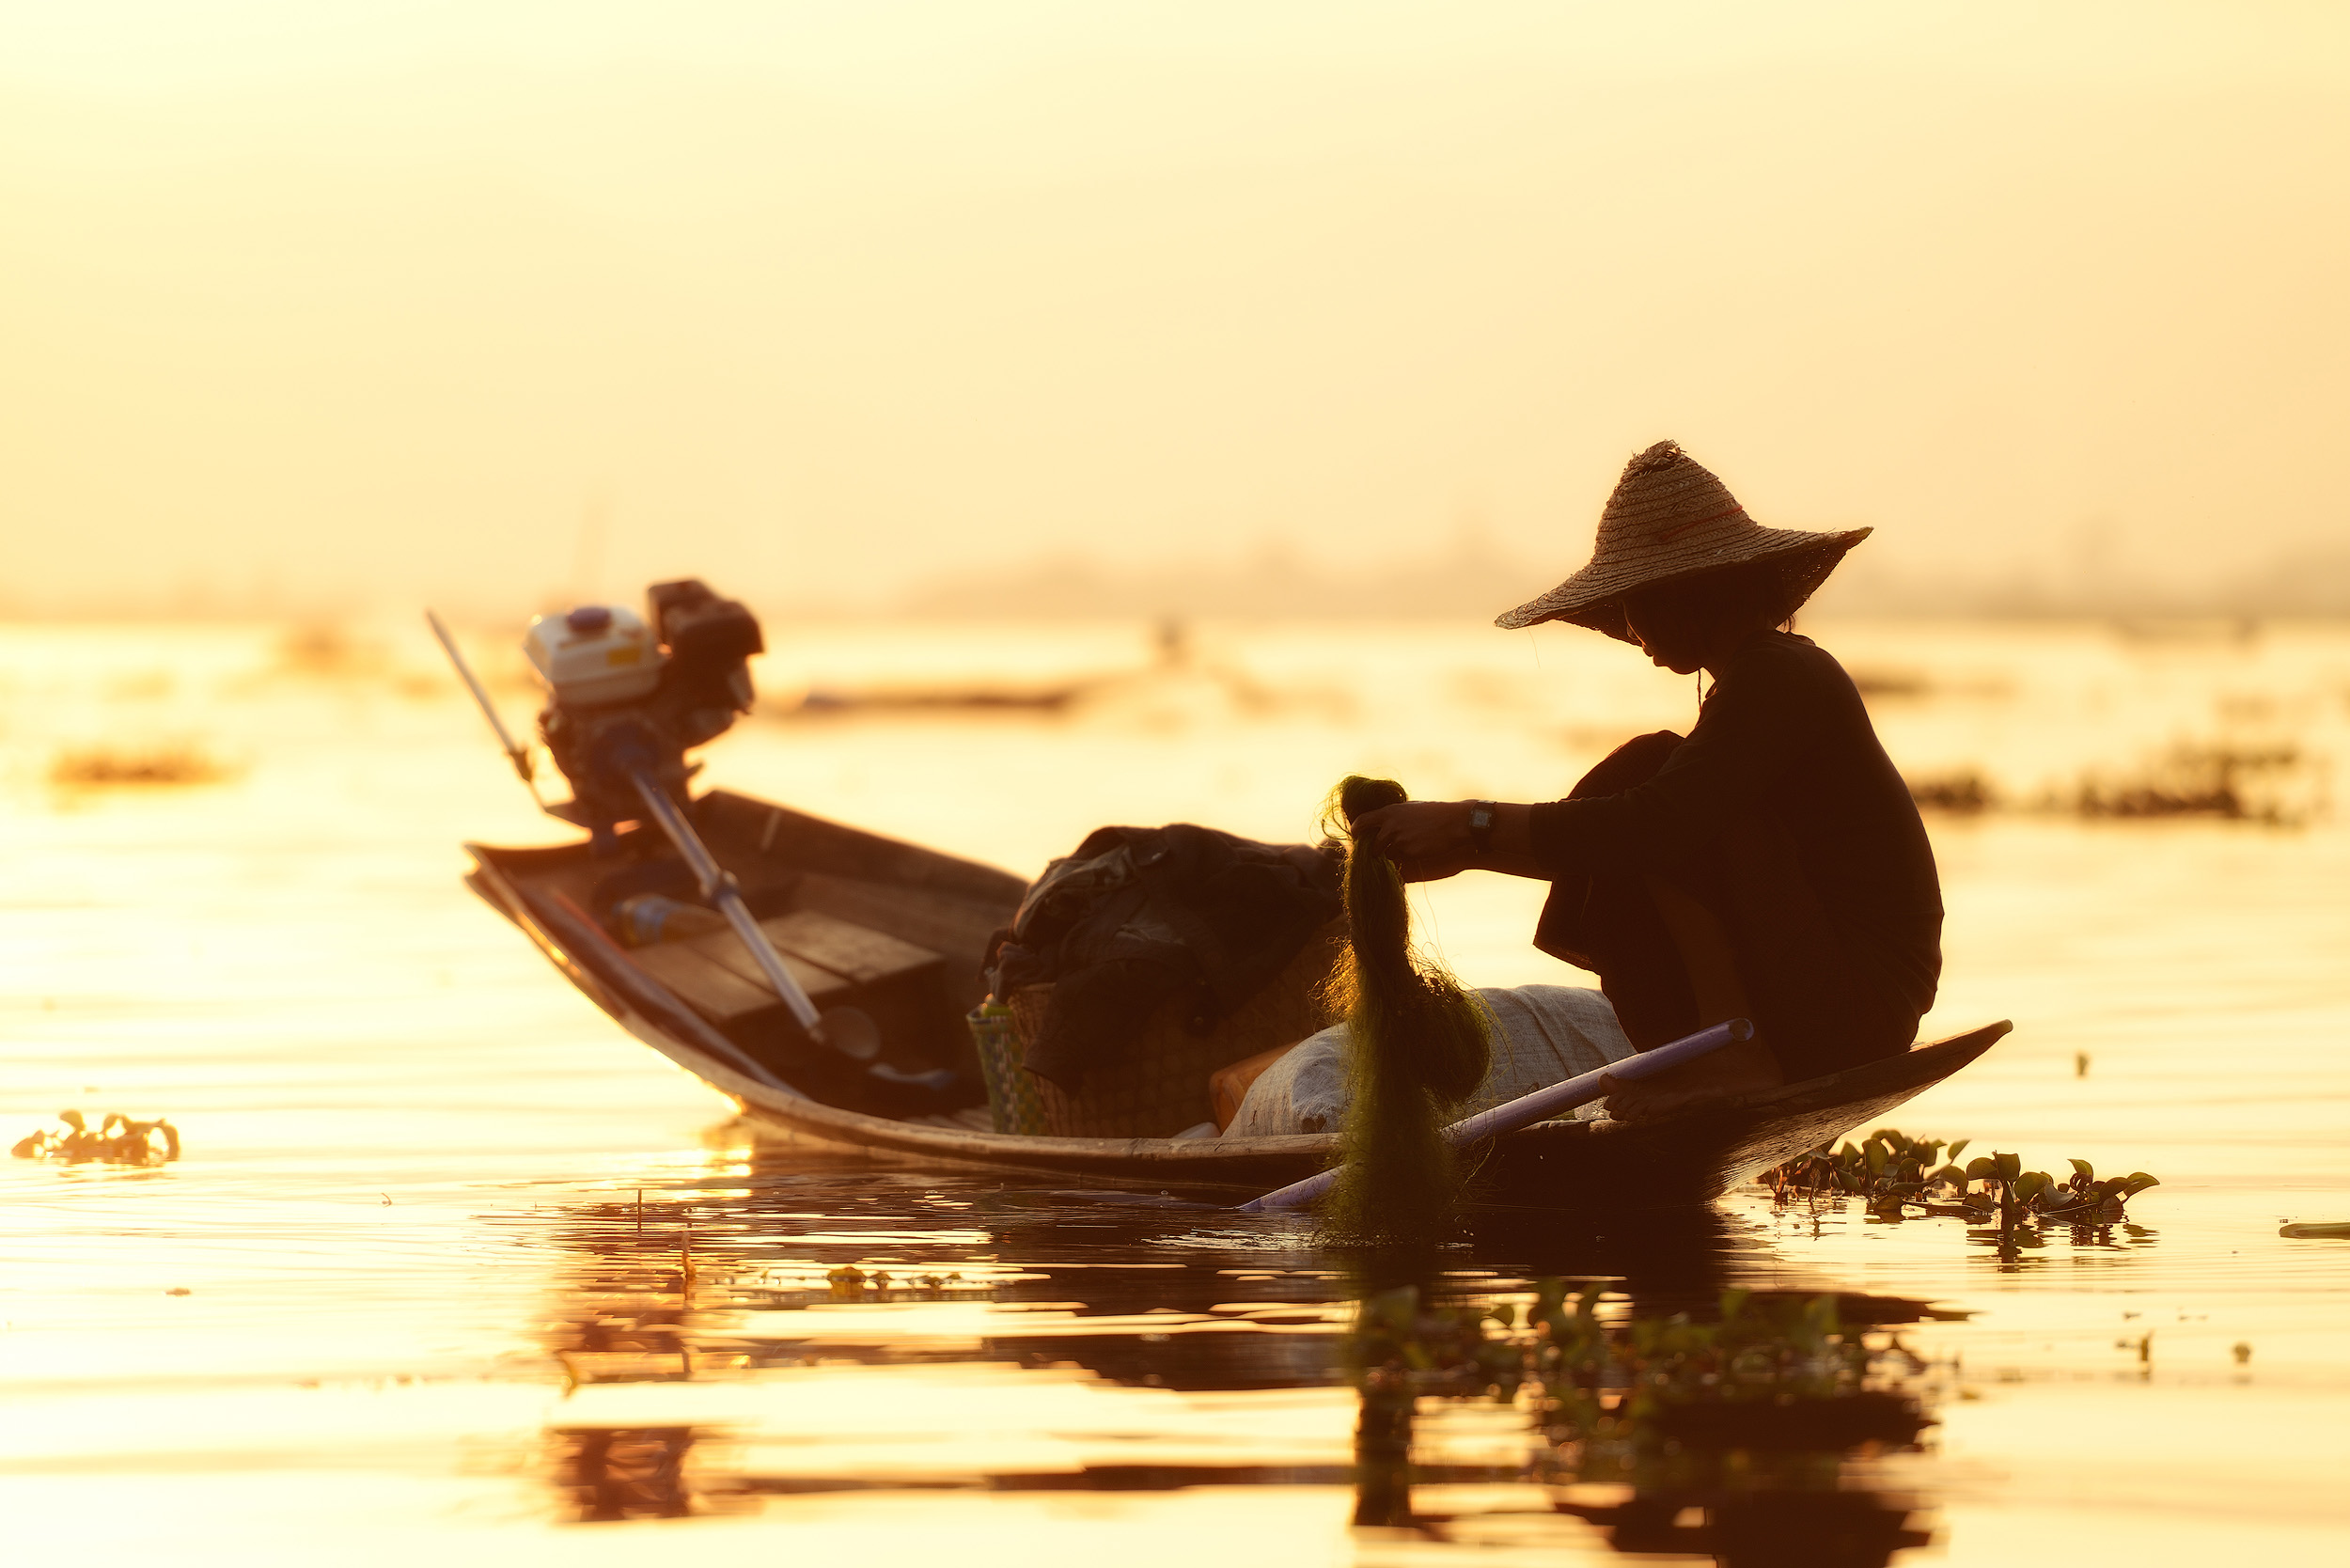 """Lake Inle Fisherman   Lake Inle in the mountains of Shan State, central Burma, is a truly astonishing place. The lake has entire villages set on stilts above the water scattered all over the lake and entire communities and ways of life are centered around the water. Crops are grown in floating gardens, fabrics are produced in large wooden """"factories"""" on stilts, and of course everywhere you go there are fishermen. I took this shot in the very last light of day before the sun dipped behind the mountains."""